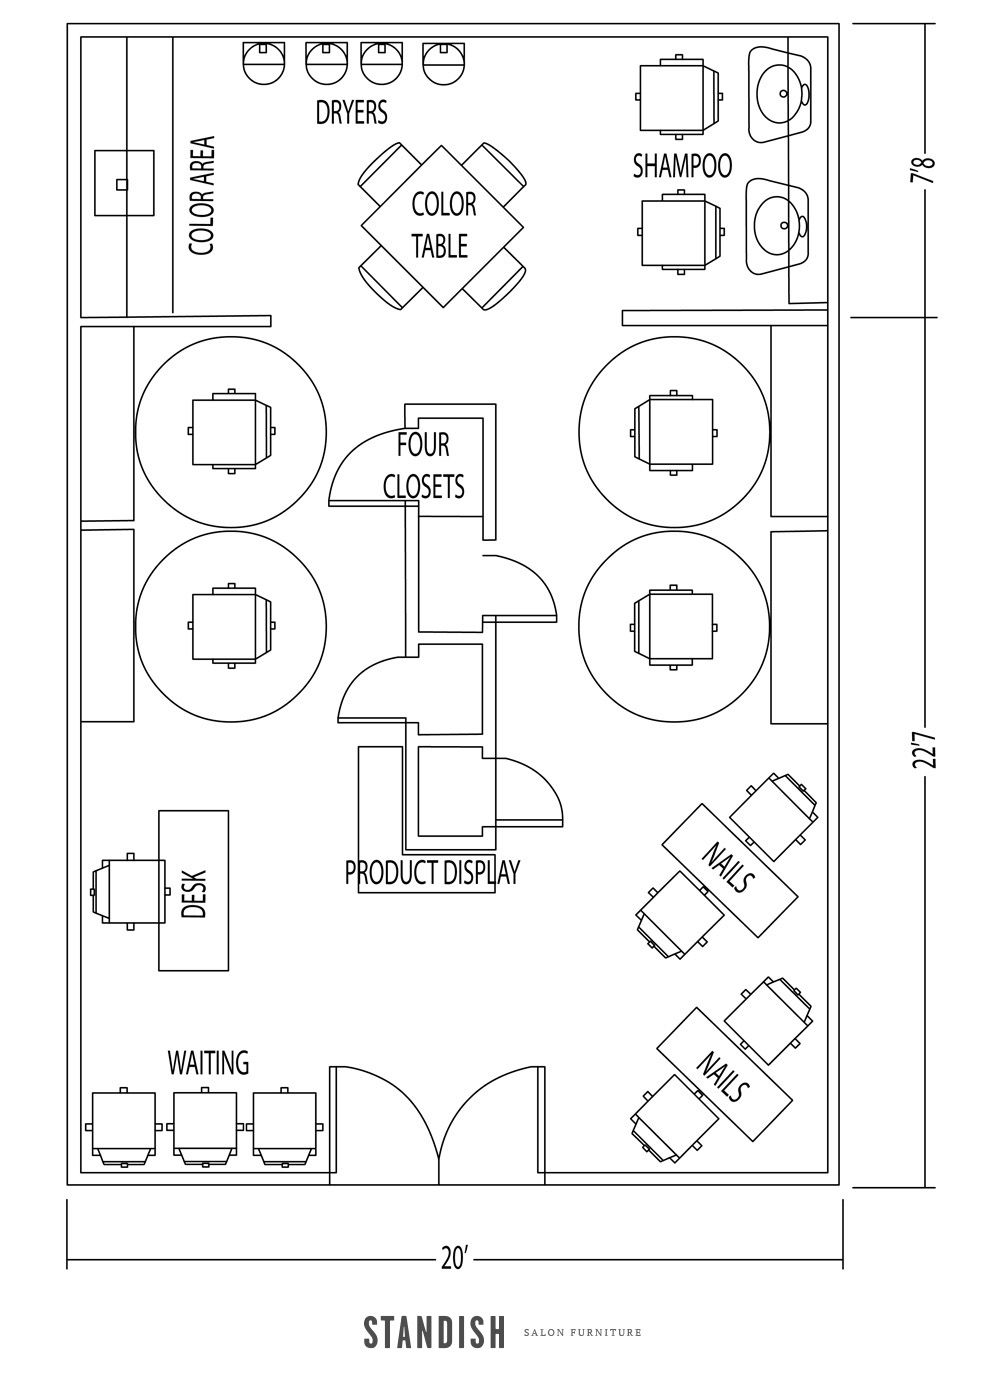 5 Amazing Salon Floor Plan Designs Beauty Salon Design Hair Salon Design Salon Design